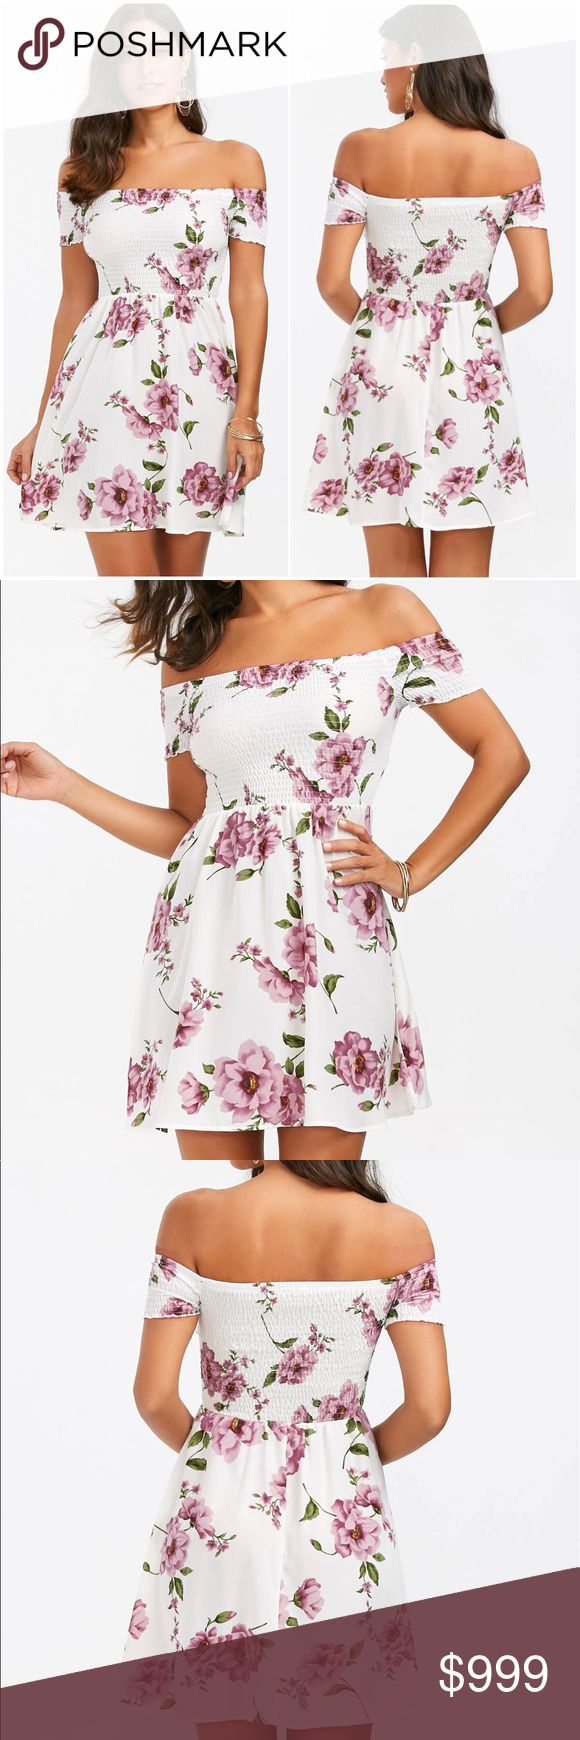 🔷COMING SOON🔷 Floral A-Line Skater Dress title:	Product Details Style:	Cute Material:	Polyester Silhouette:	A-Line Dresses Length:	Mini Neckline:	Off The Shoulder Sleeve Length:	Short Sleeves Pattern Type:	Floral With Belt:	No Season:	Summer Weight:	0.2200kg Package Contents:	1 x Dress.                                                   Size 6 Dresses Mini